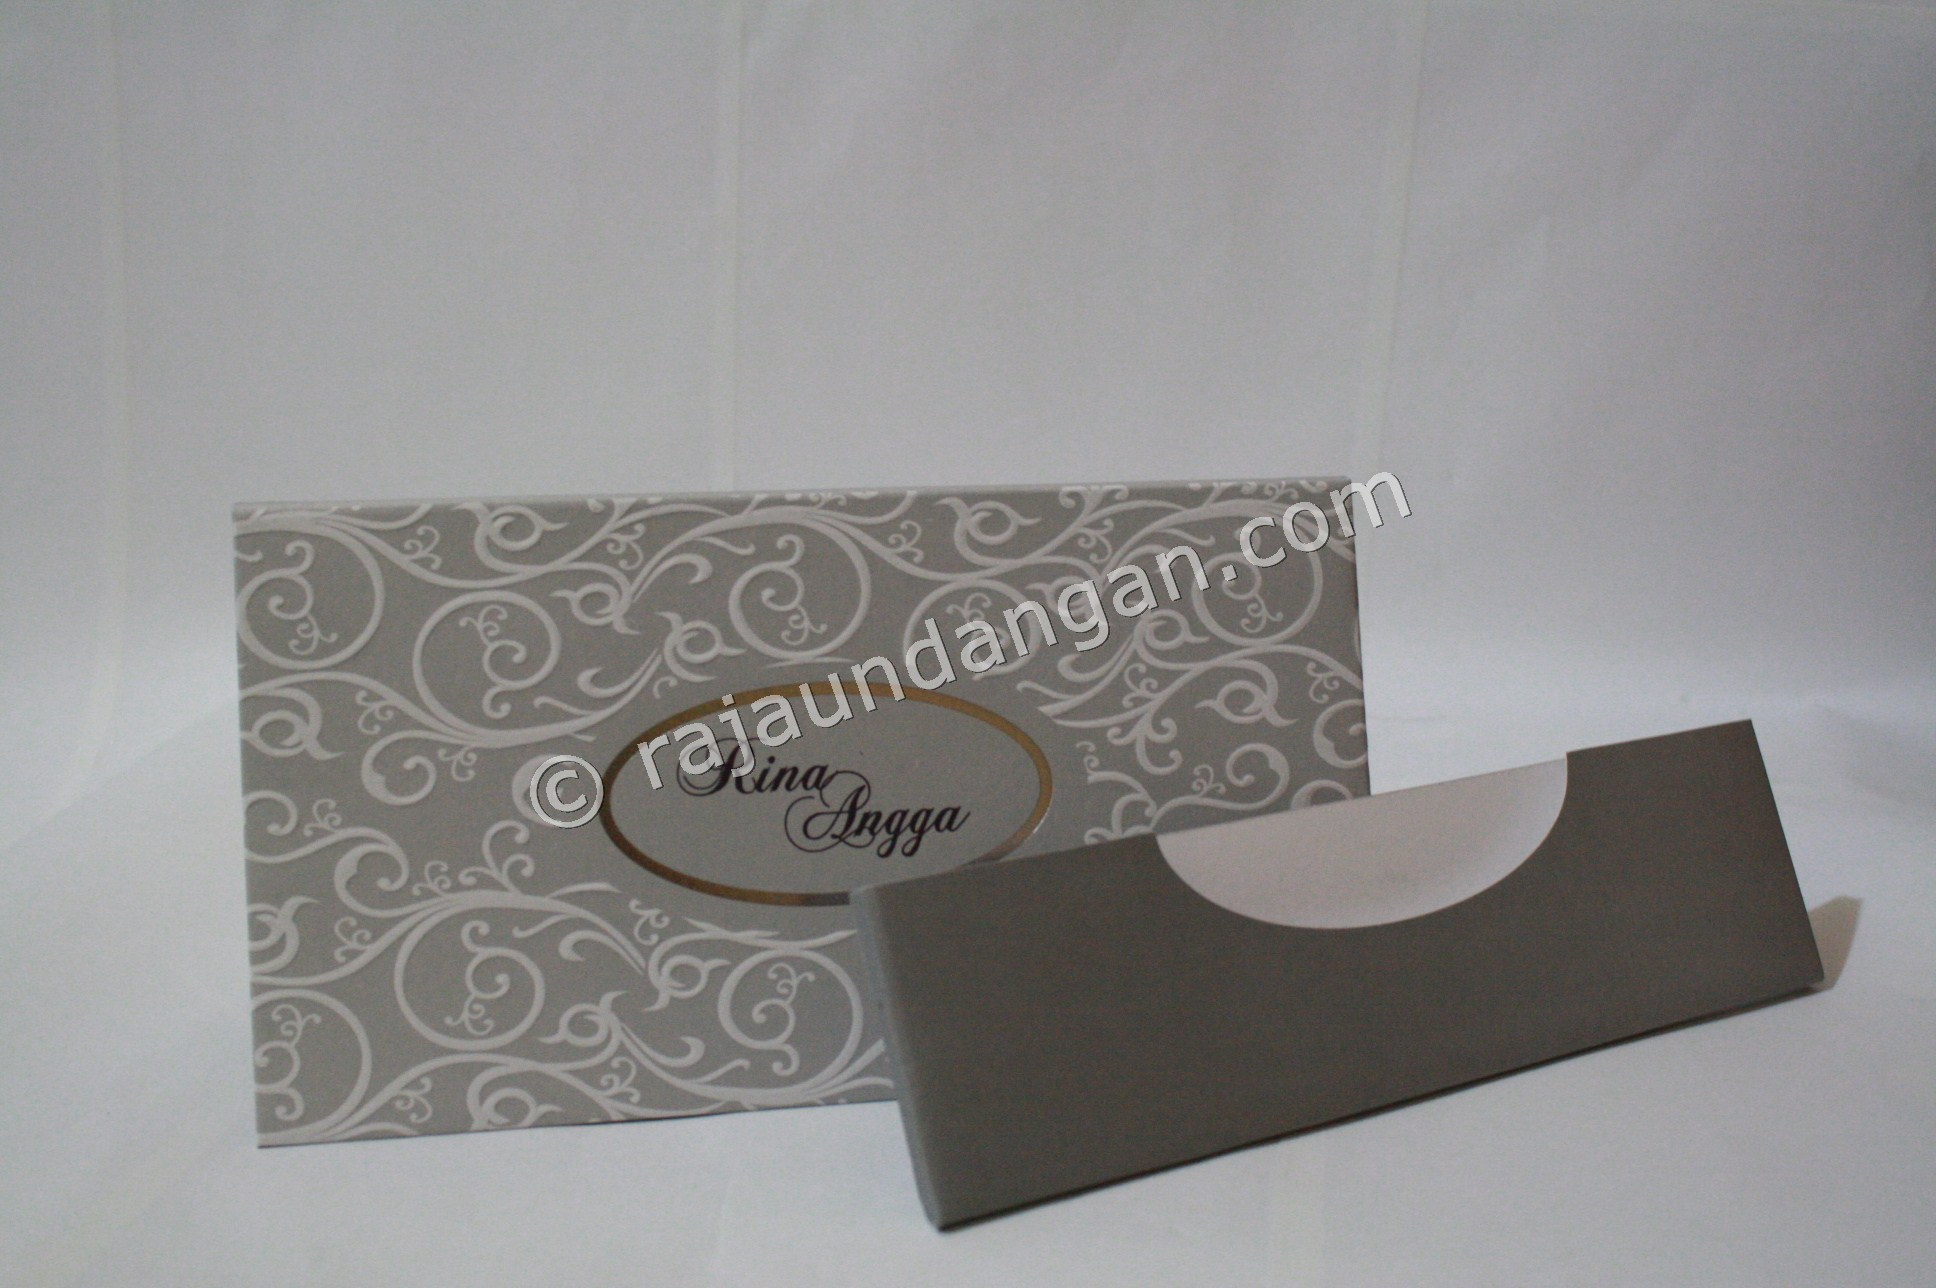 Contoh Kartu Undangan Pernikahan Hardcover ED 29 2 - Membuat Wedding Invitations Simple di Simokerto